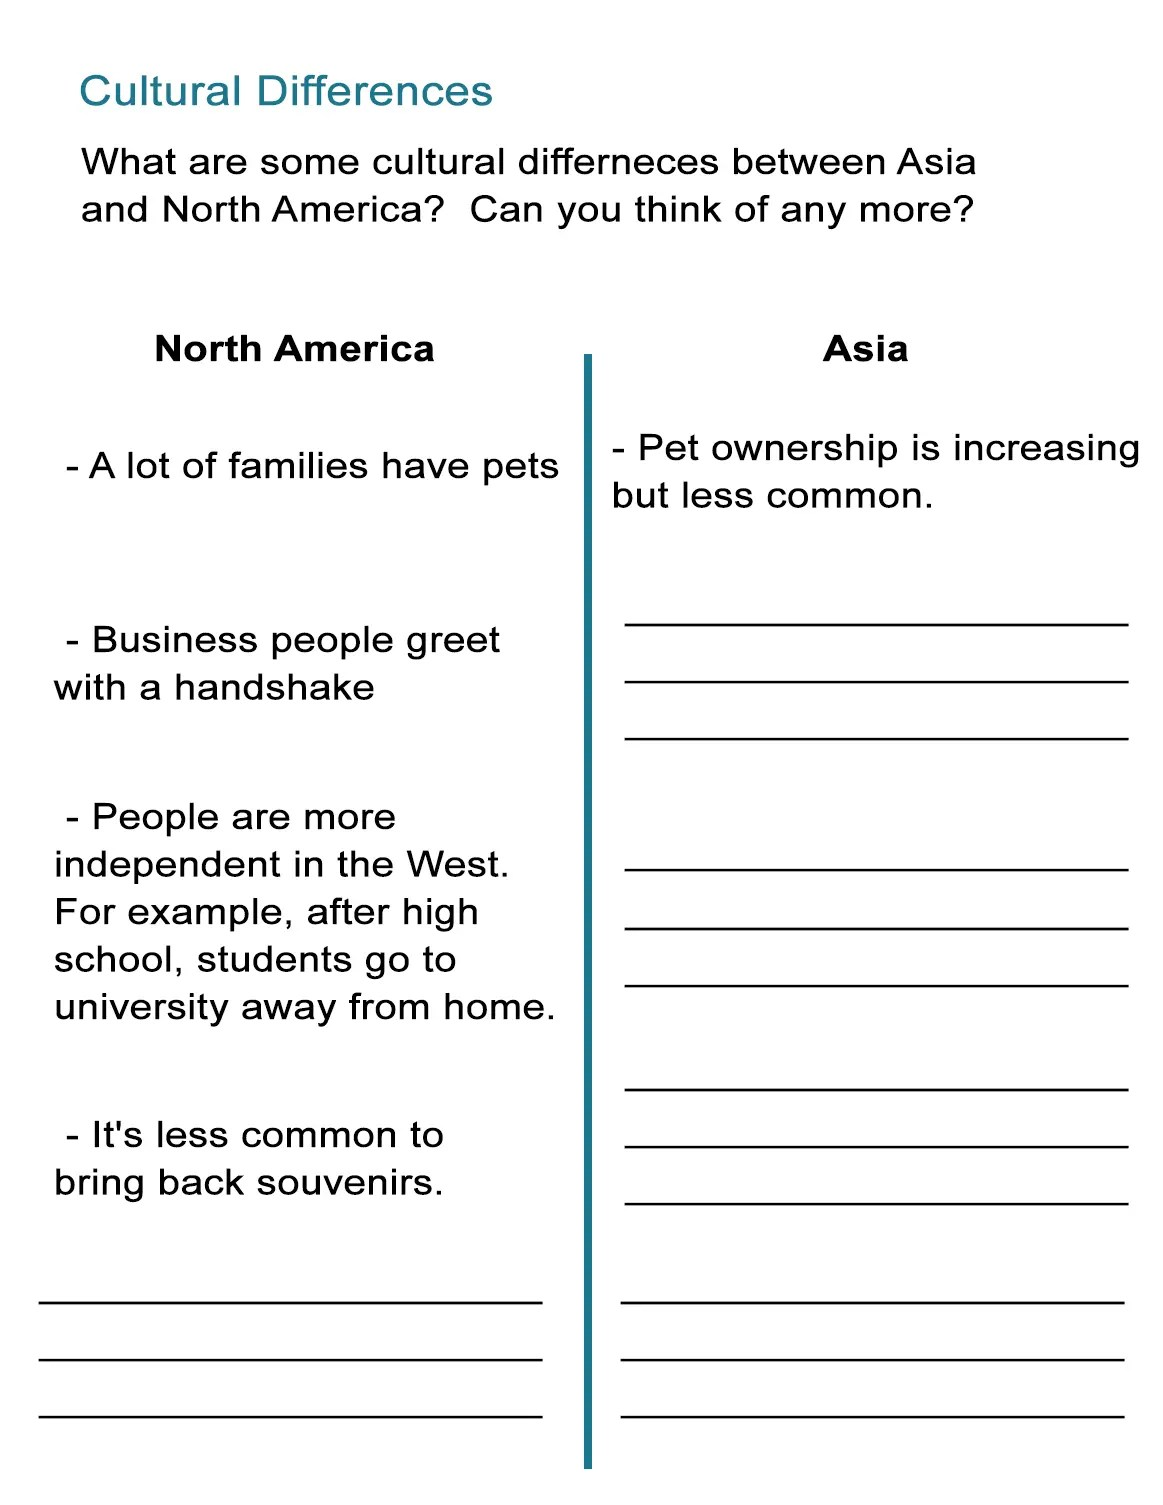 43 Free Esl Worksheets That Enable English Language Learners